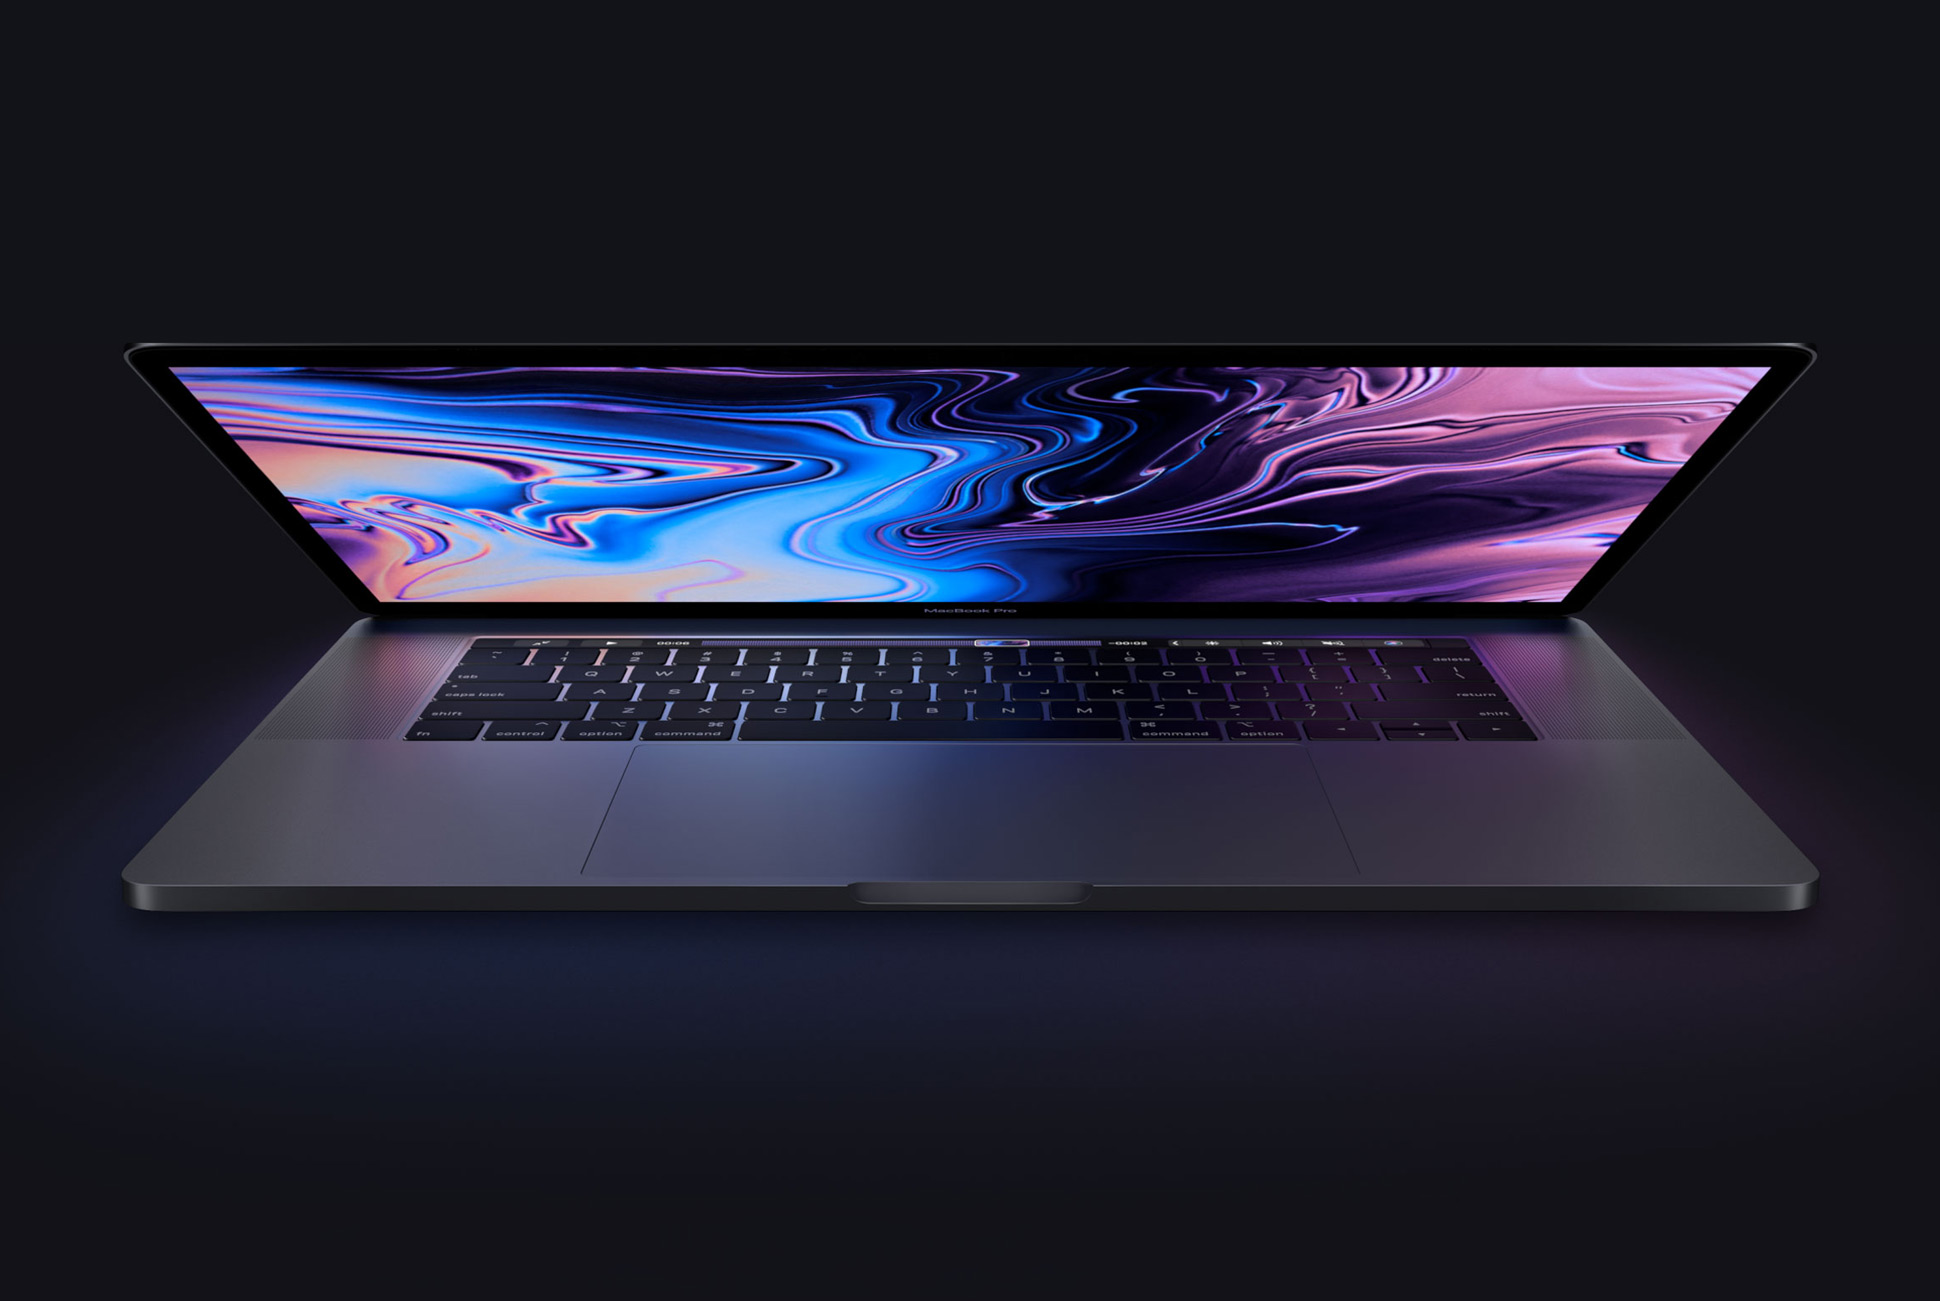 The Most Expensive and Powerful MacBook Pro Now Costs $6,898